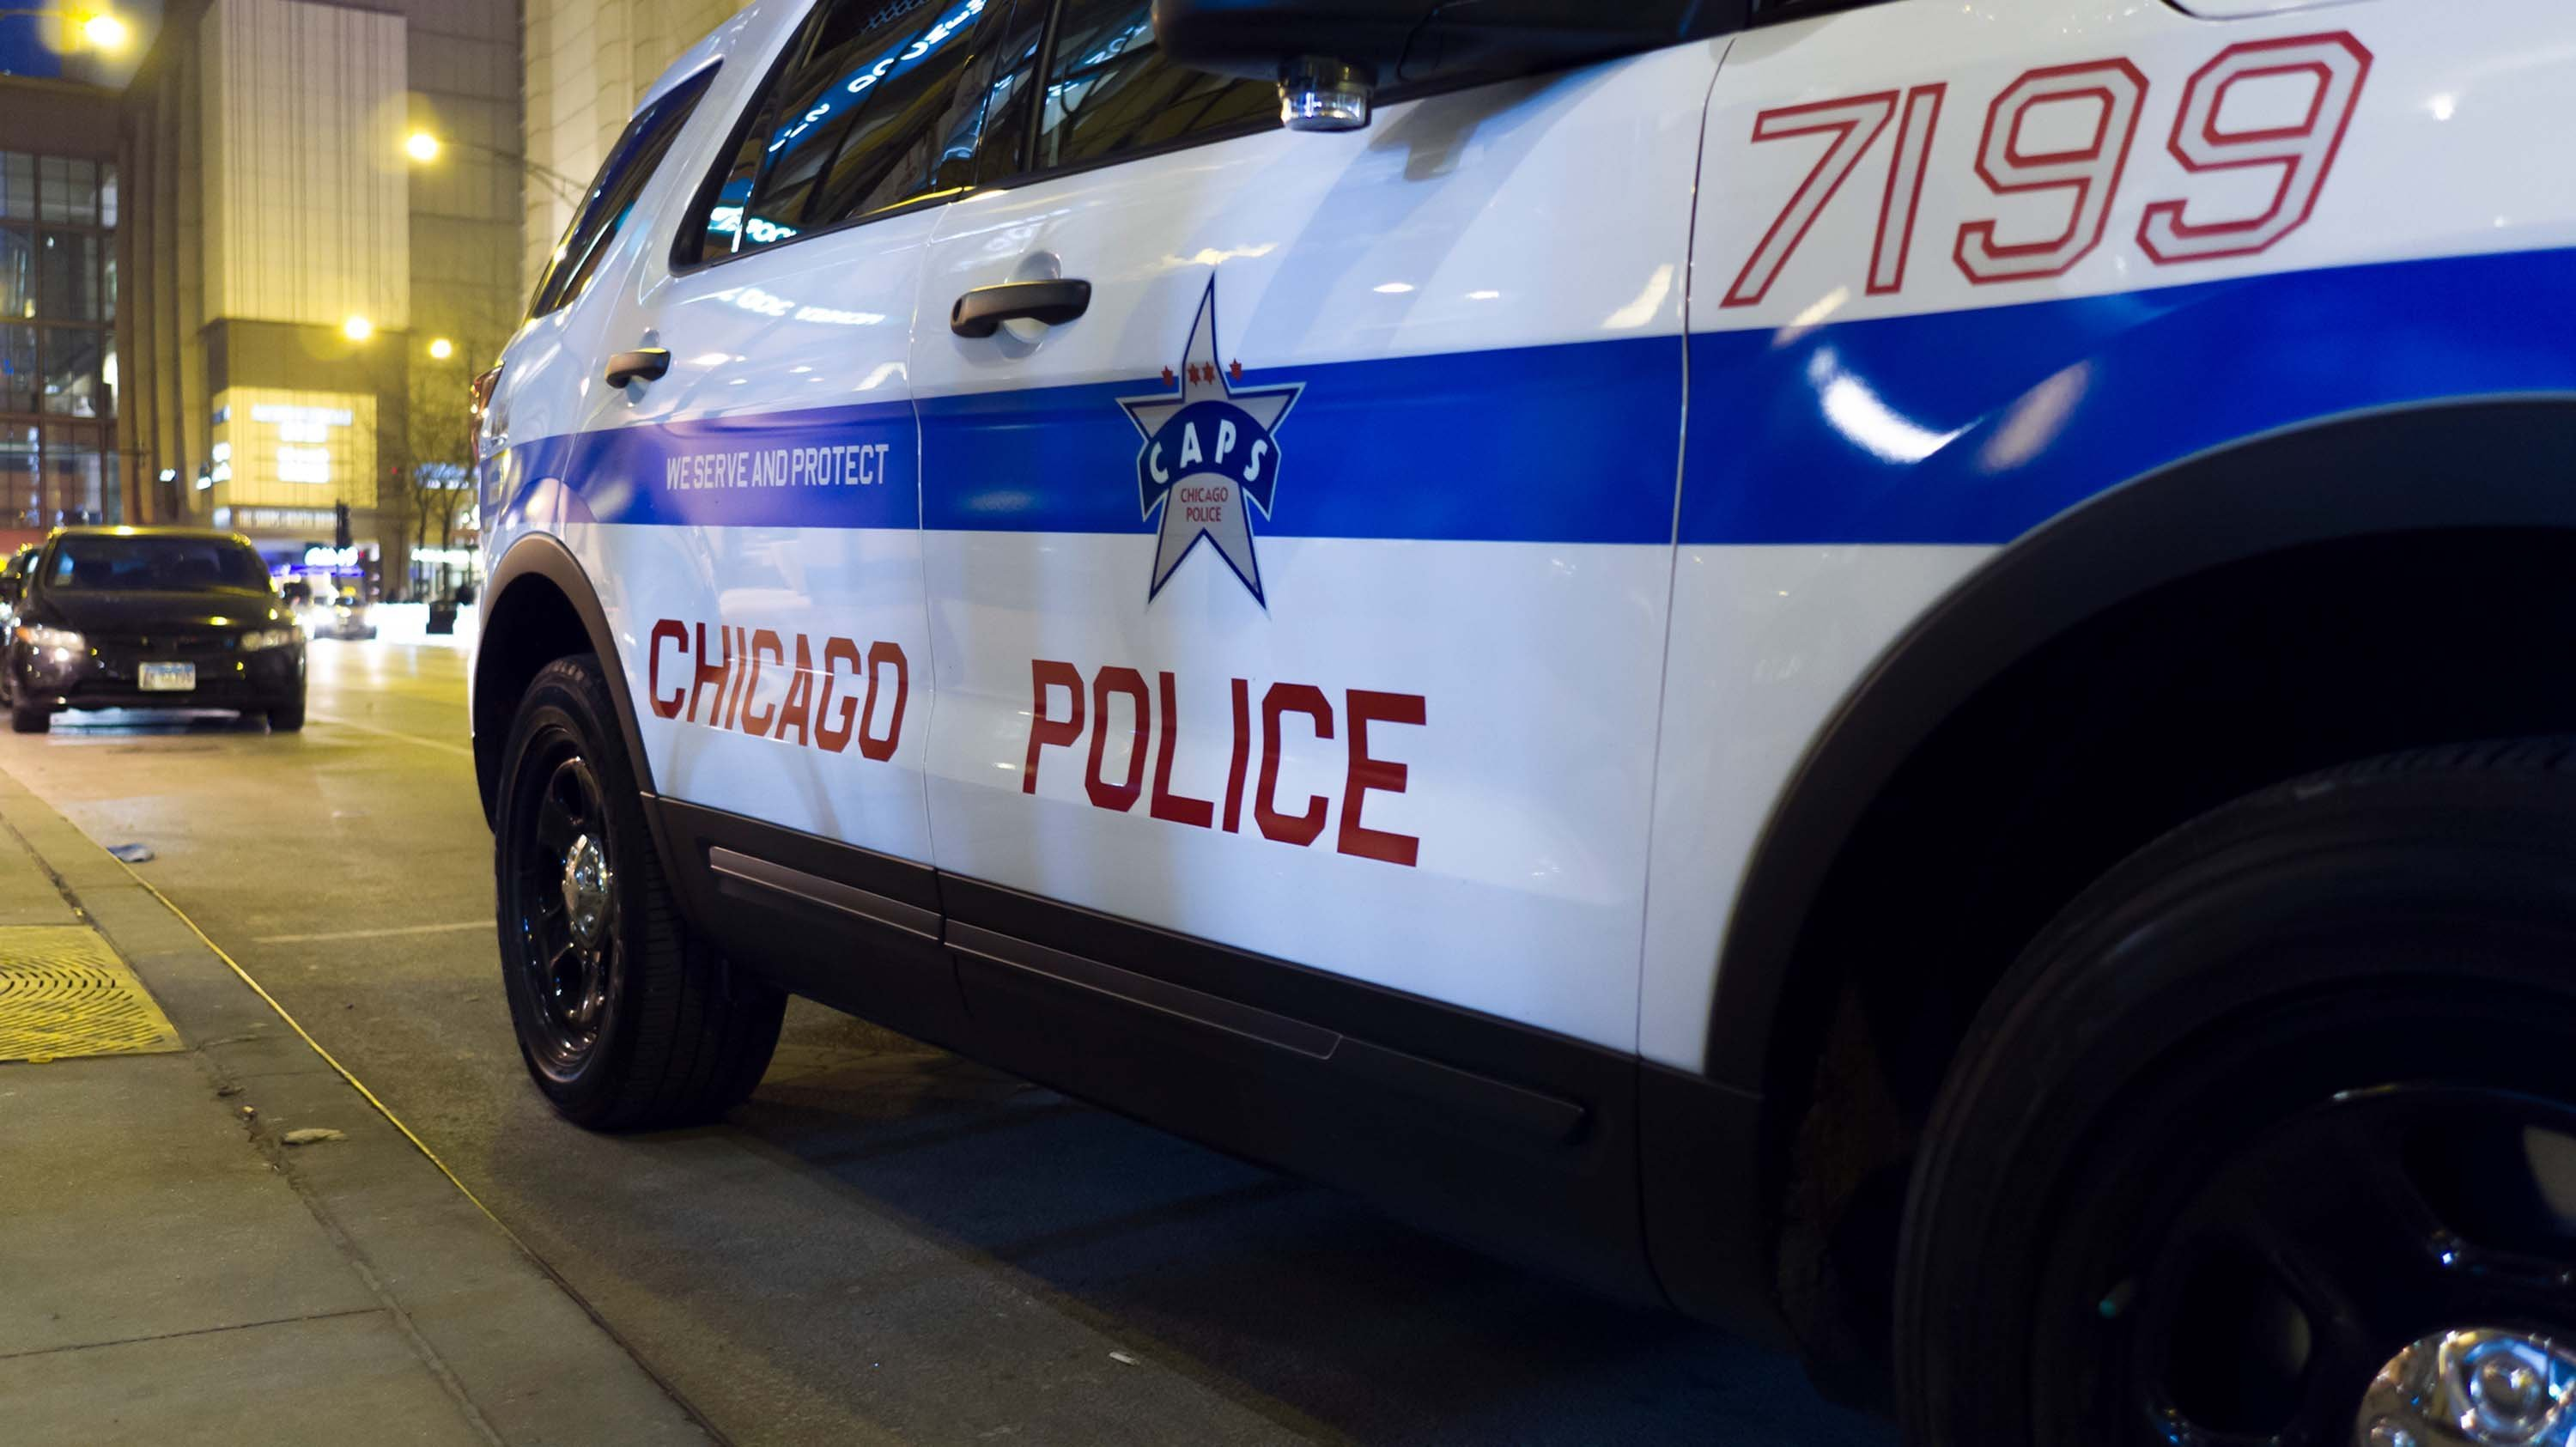 A 40-year-old Chicago police officer has killed himself. It's the 4th suicide this year on the city's force